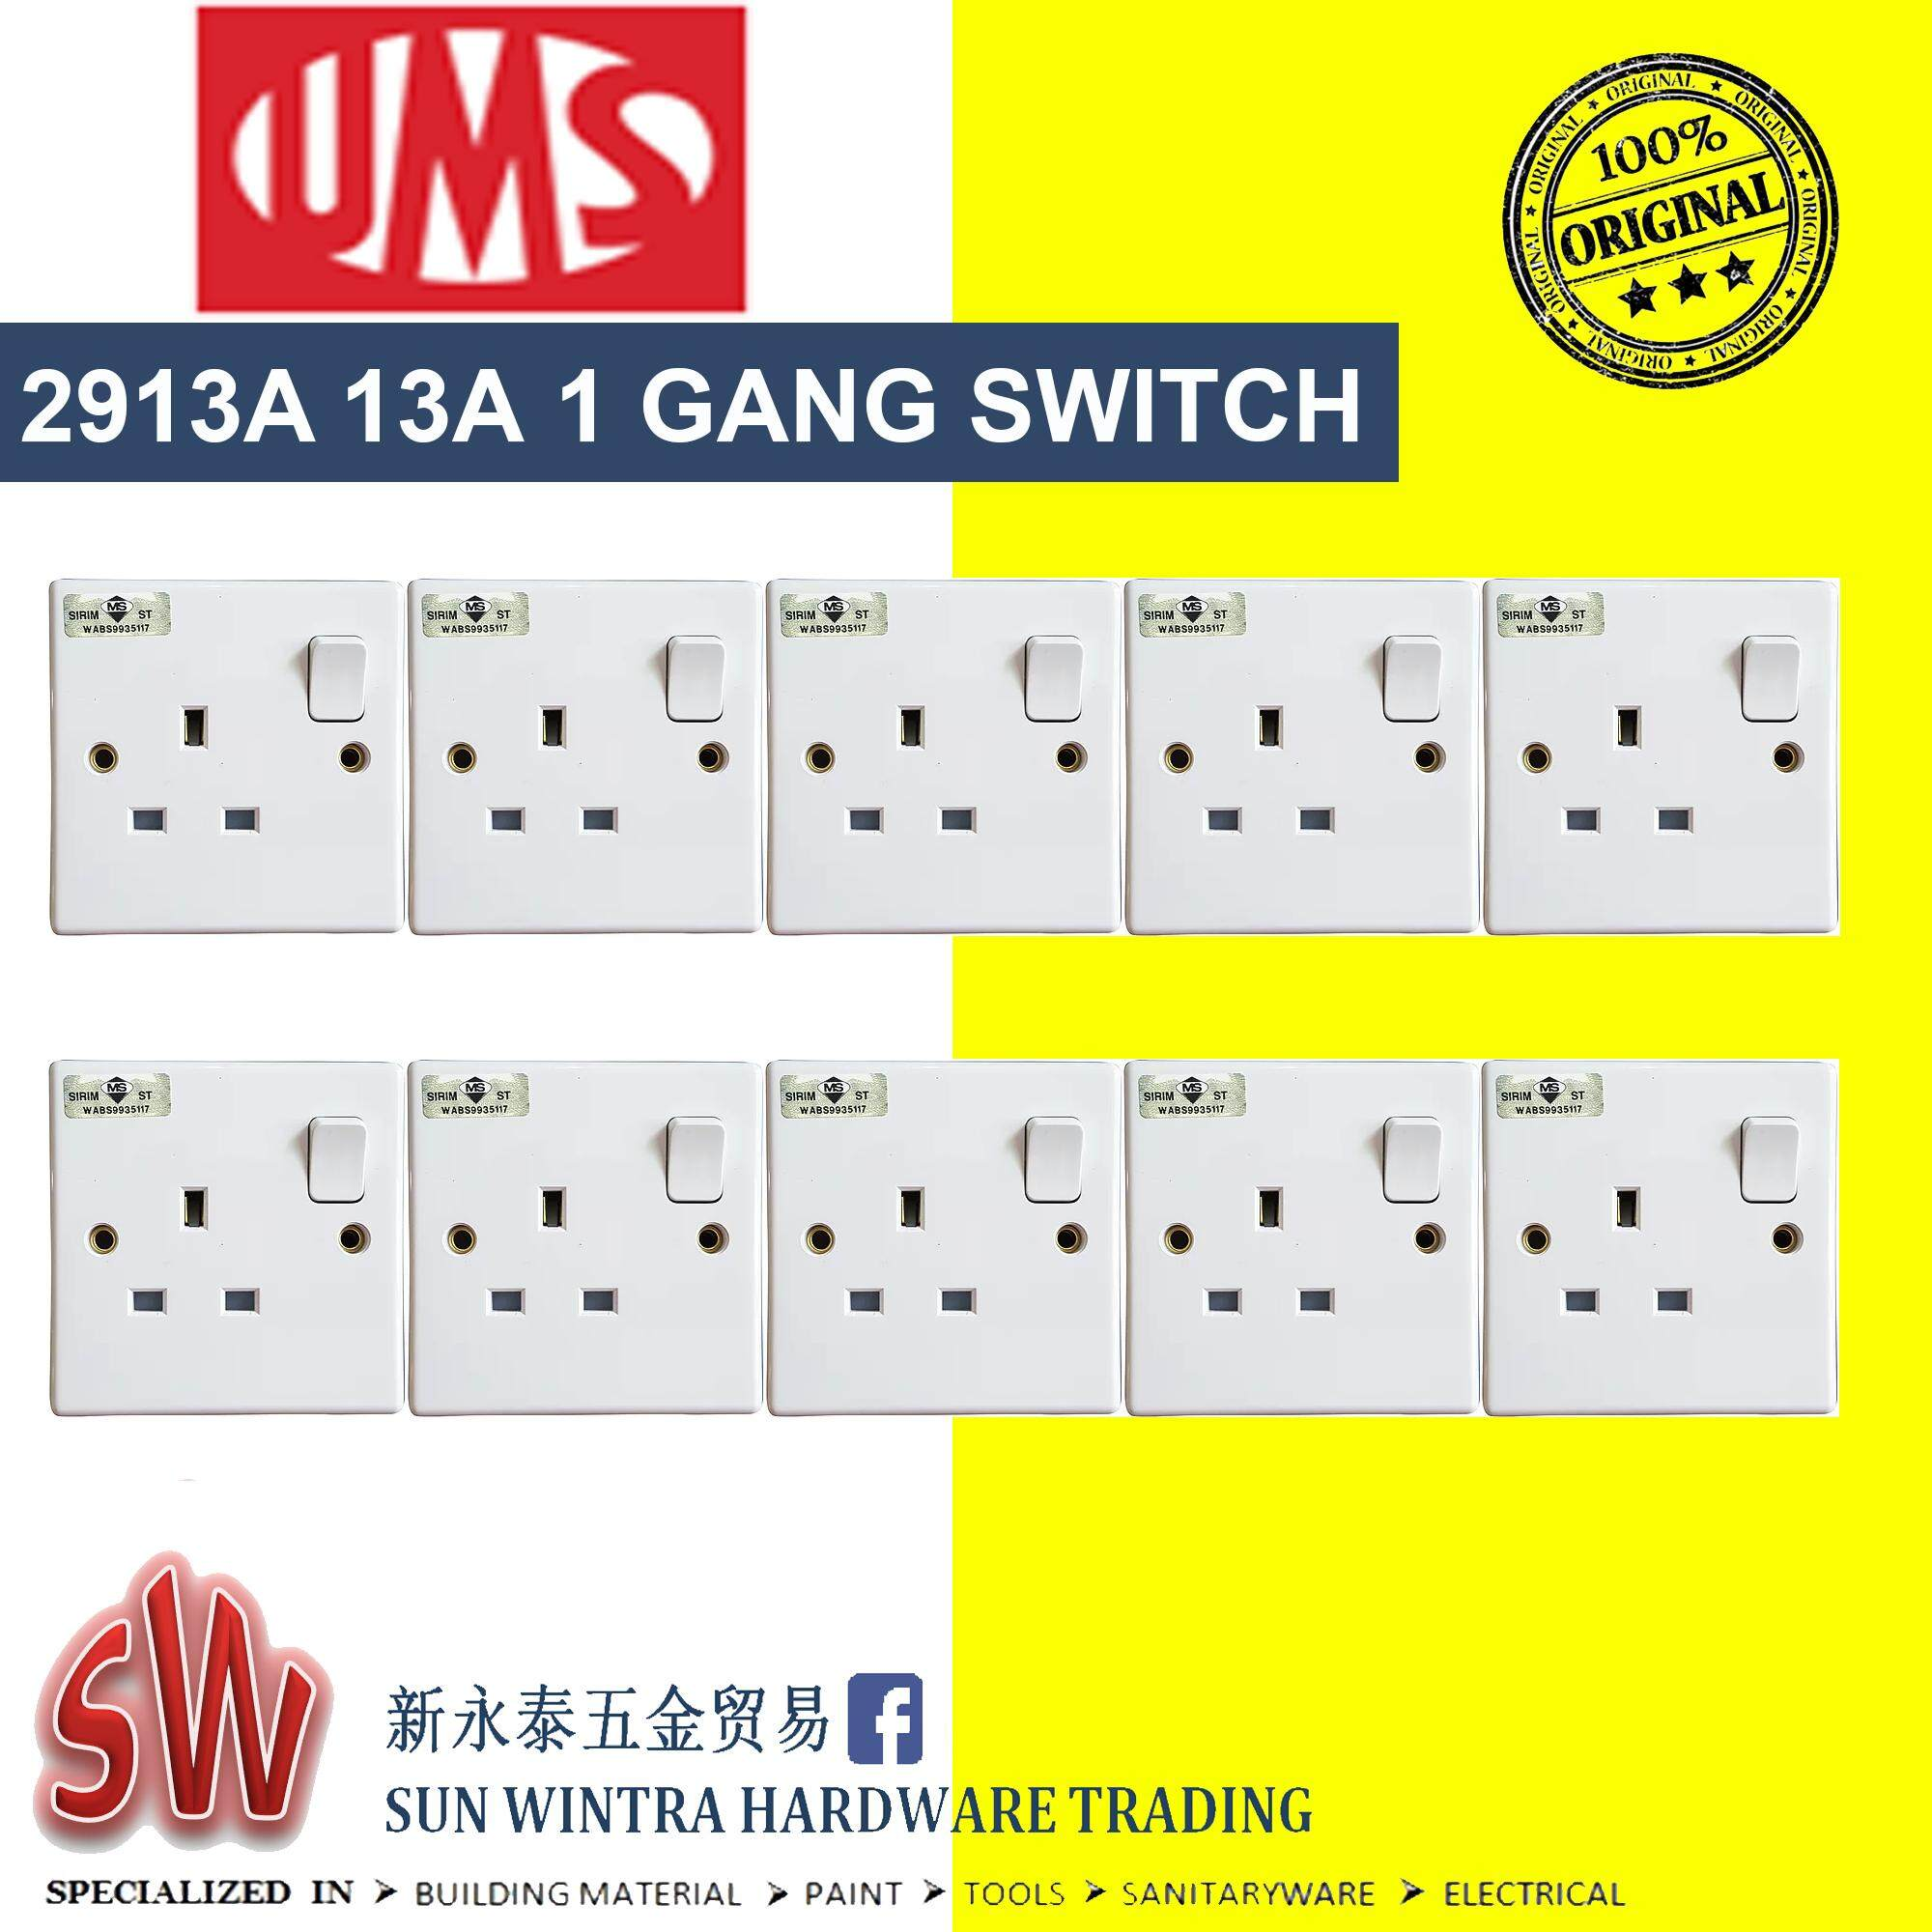 UMS 2913a 13A Switched Socket Outlet 10Pcs/Box